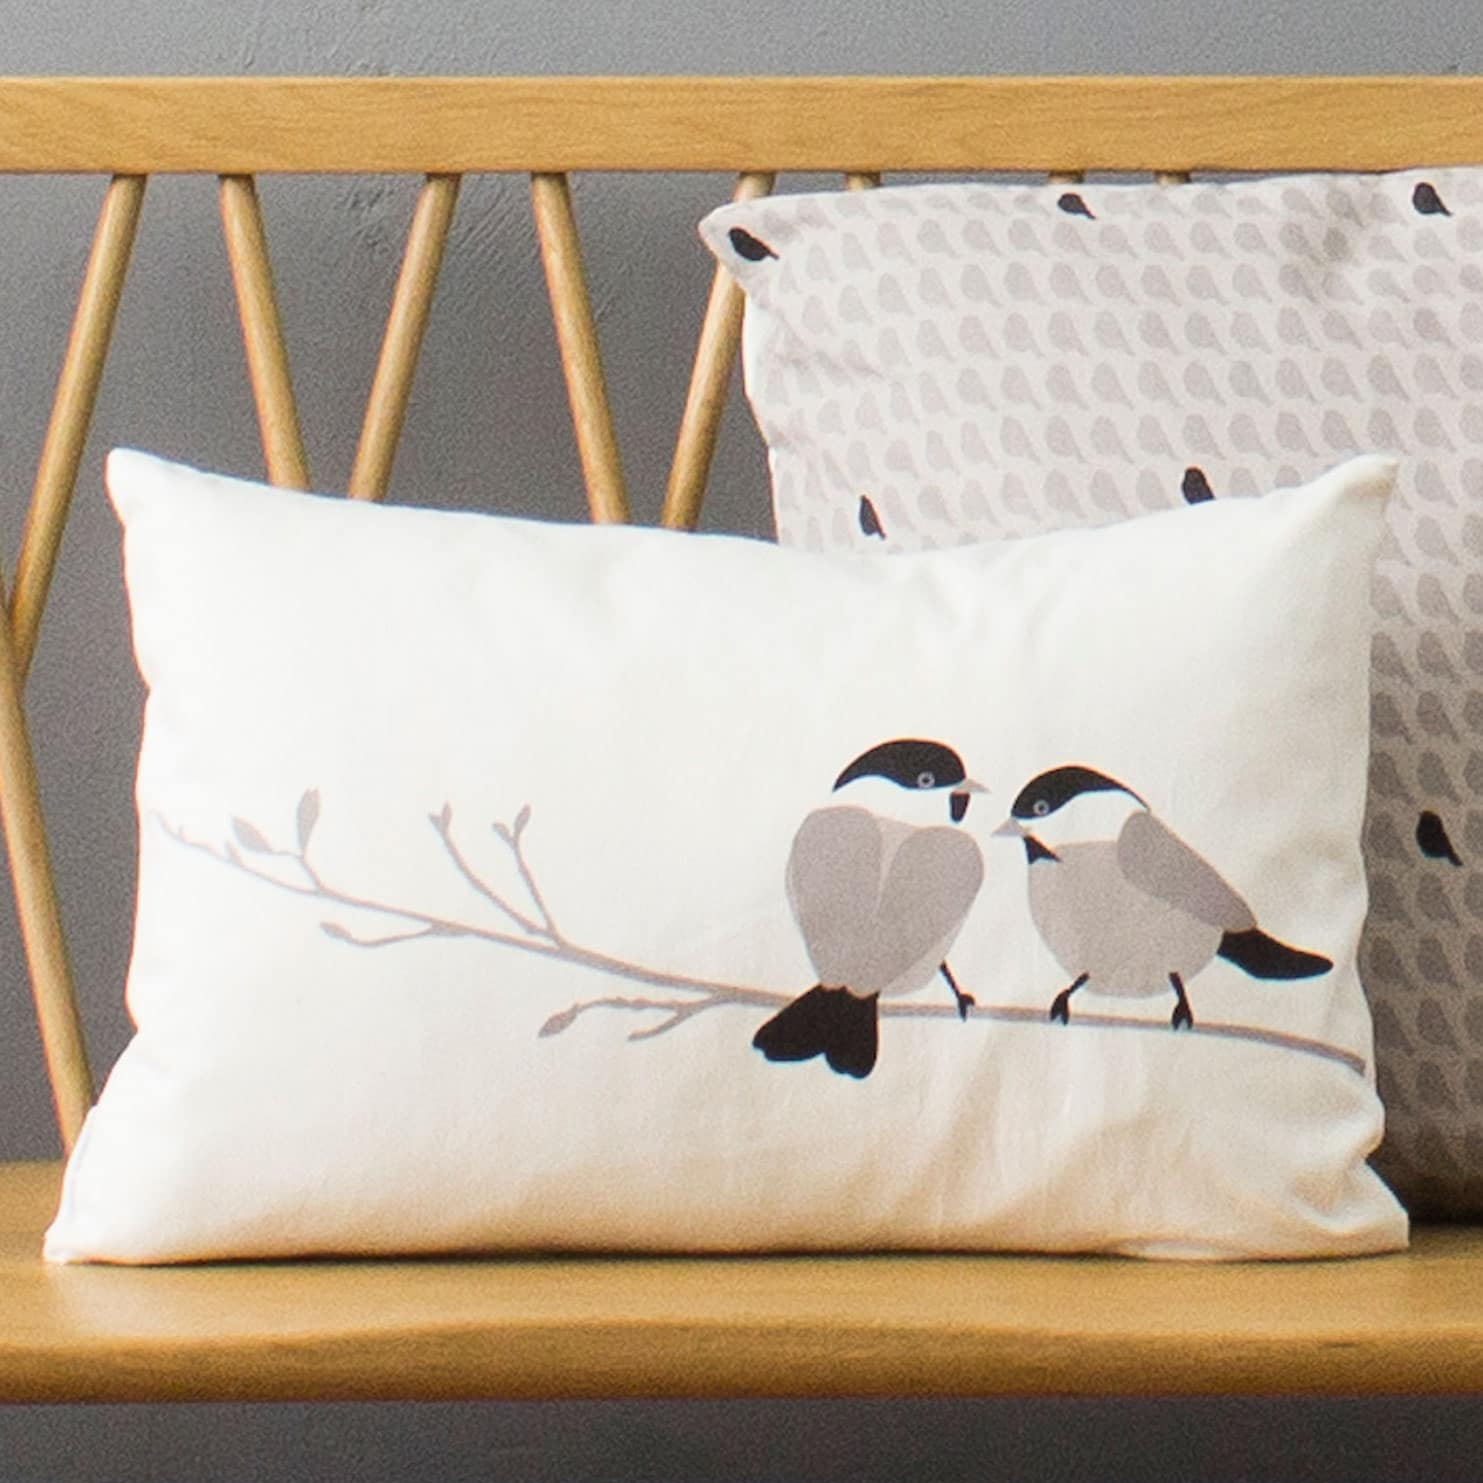 Bird cushion - willow tit design - grey - lorna syson interiors